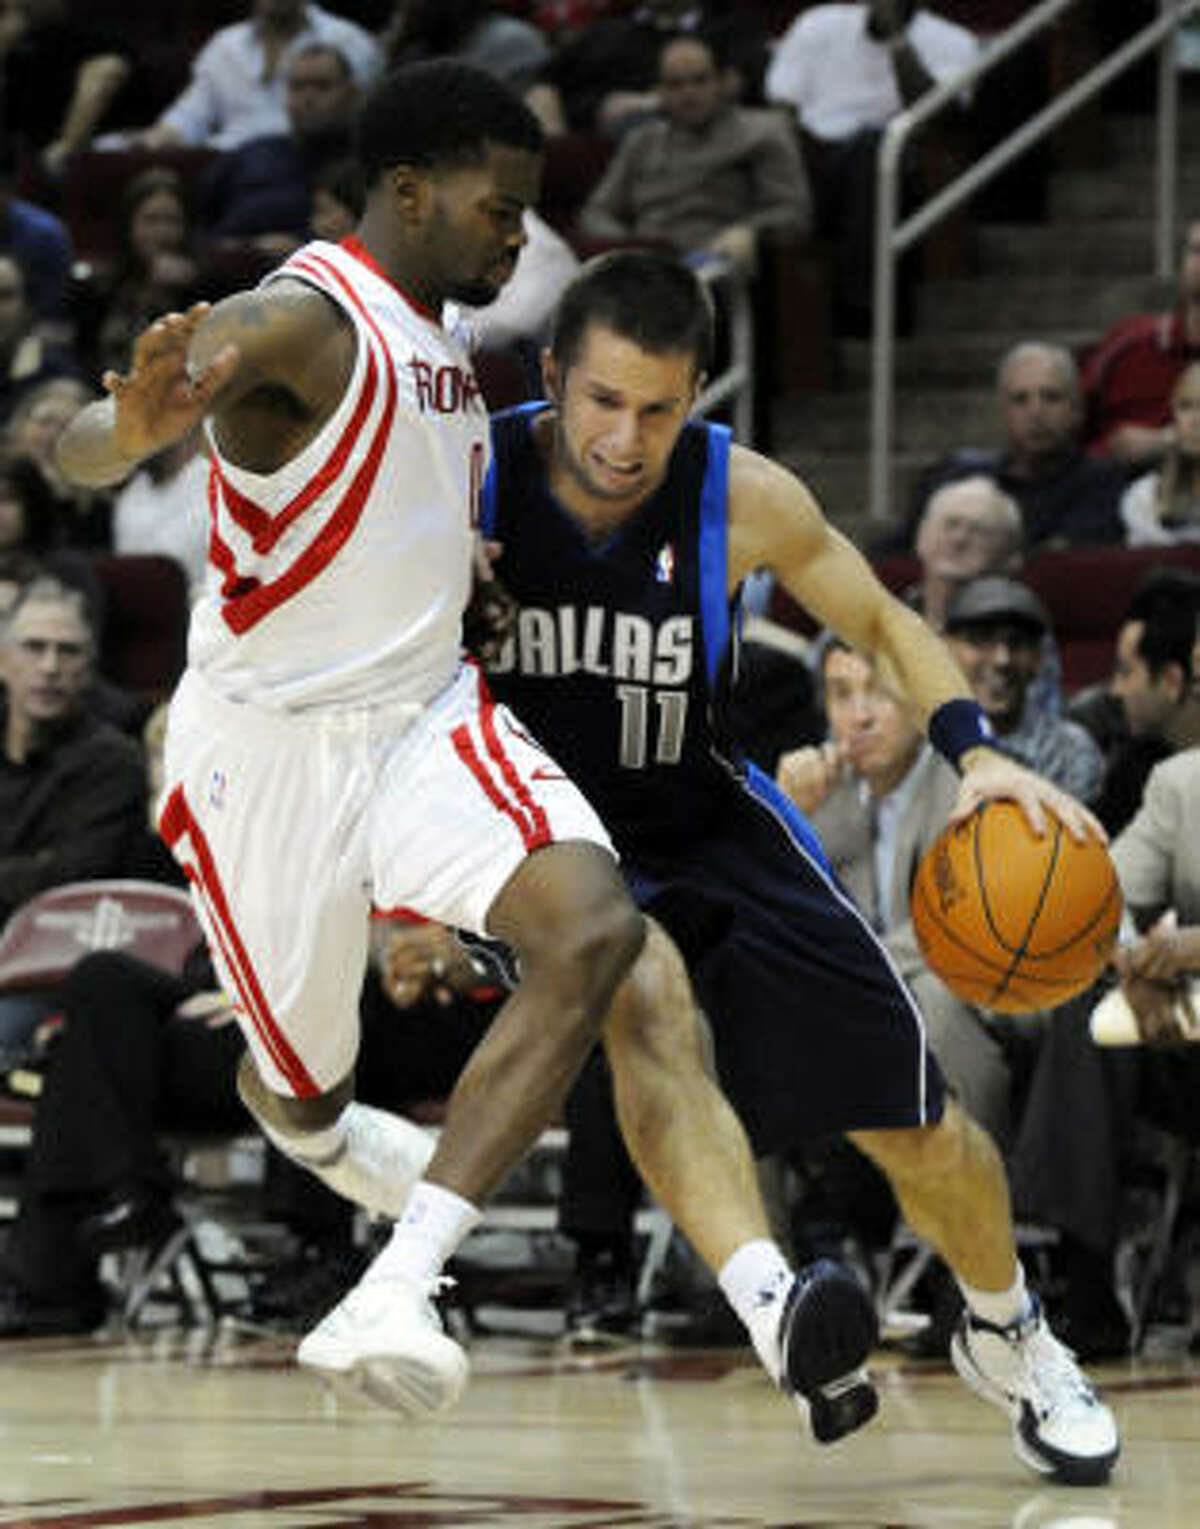 Rockets guard Aaron Brooks, left, defends Dallas' Jose Barea in the first half of Friday's preseason game at Toyota Center.